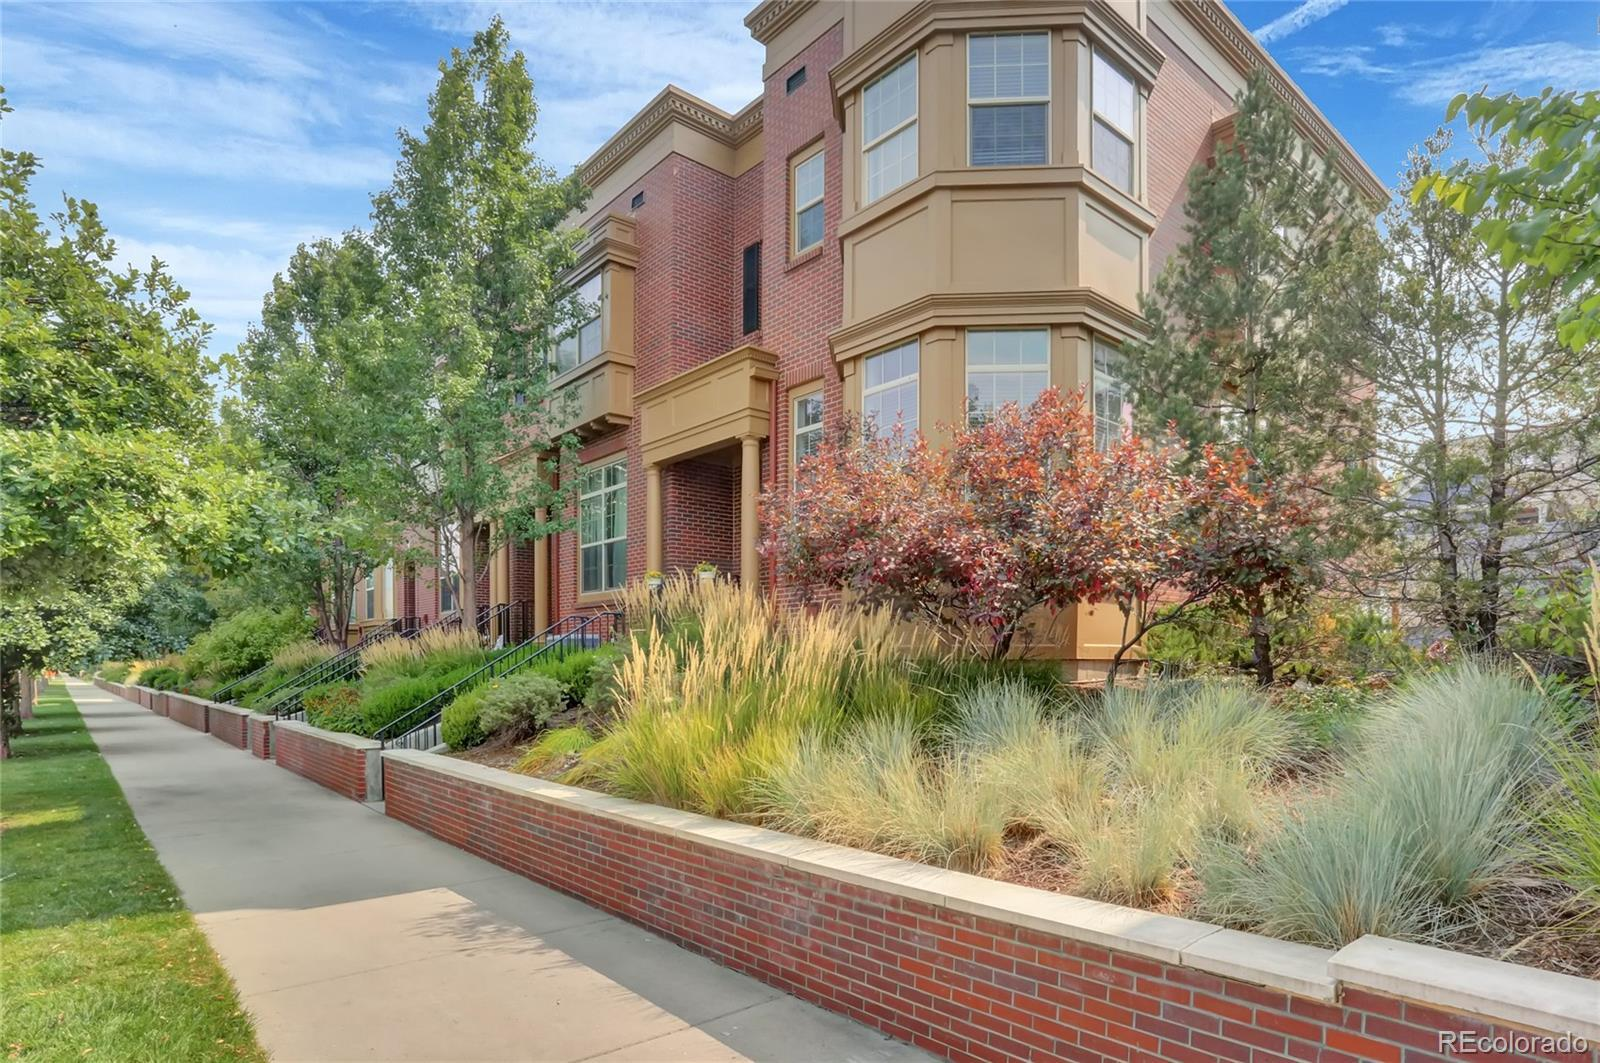 7902 E 29th Avenue, Denver, CO 80238 - #: 6687724